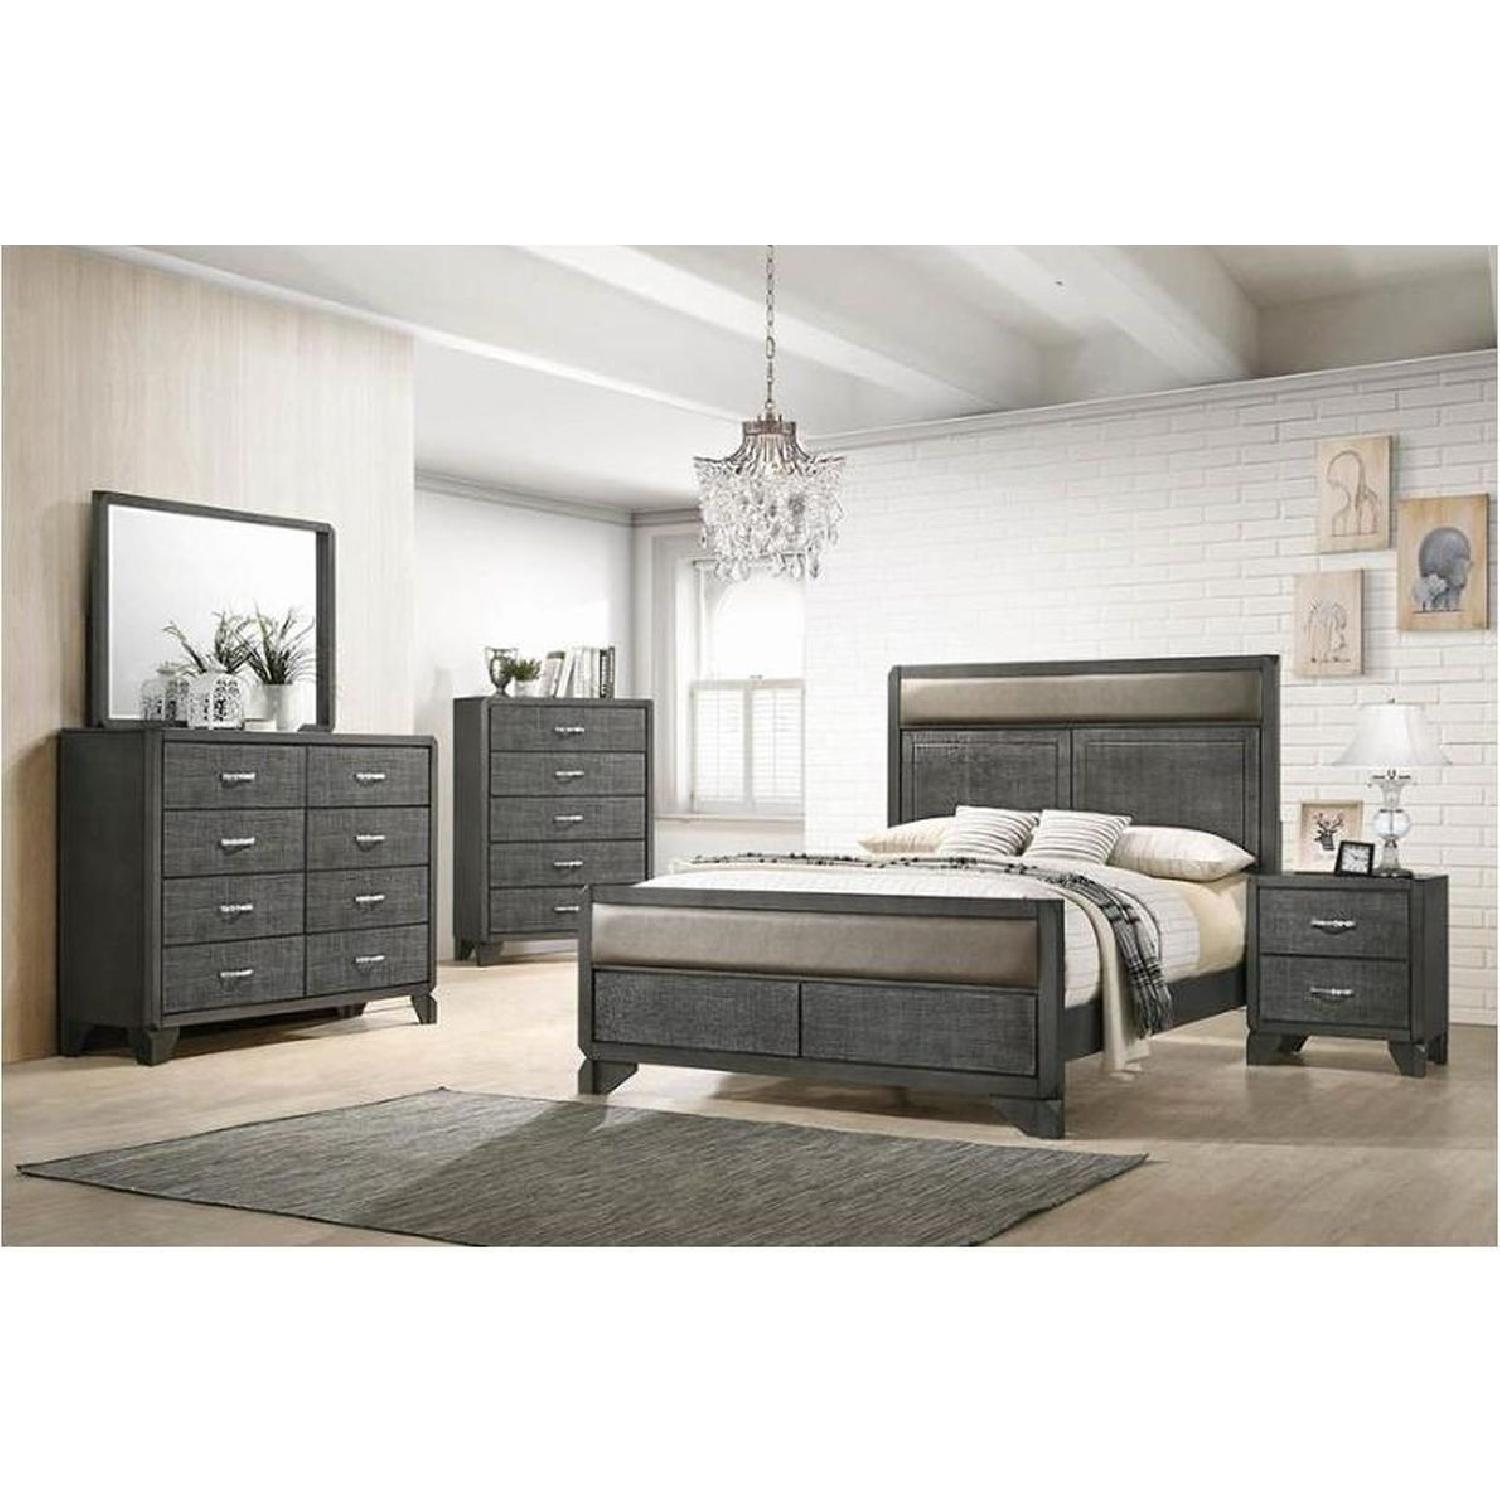 Leatherette Queen Bed in Caviar Finish w/ Woven Texture - image-2